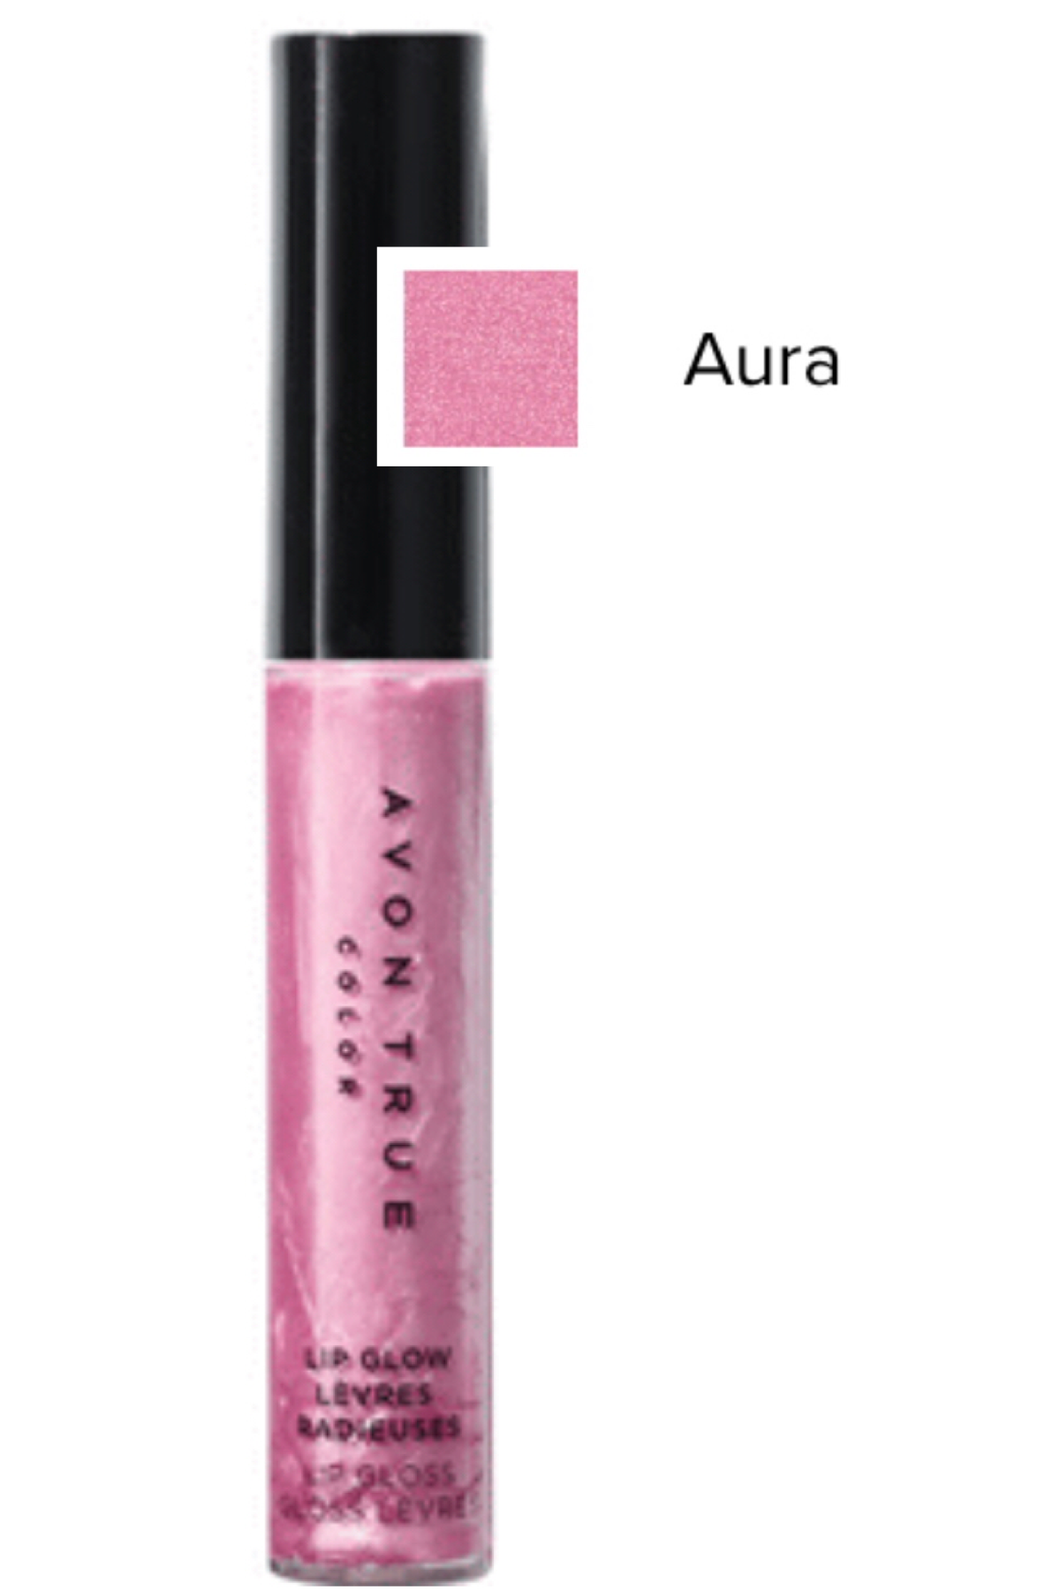 Aura True Color Lip Glow Lip Gloss